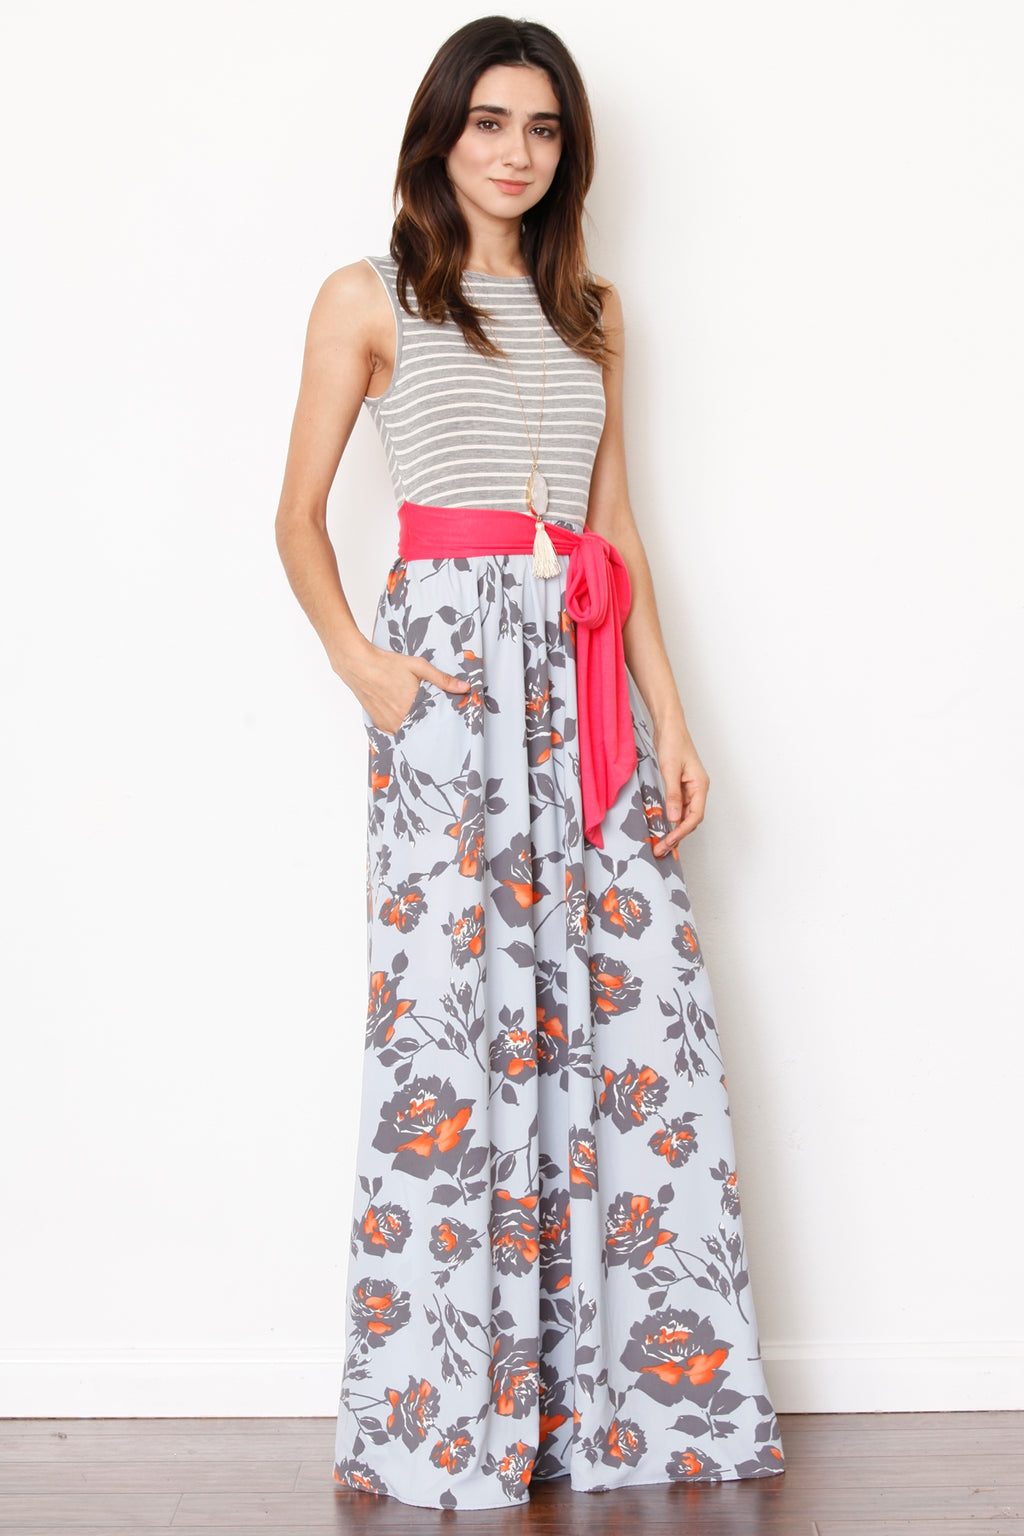 Grey Stripe Sleeveless Light Blue Floral Maxi Dress with Sash_L